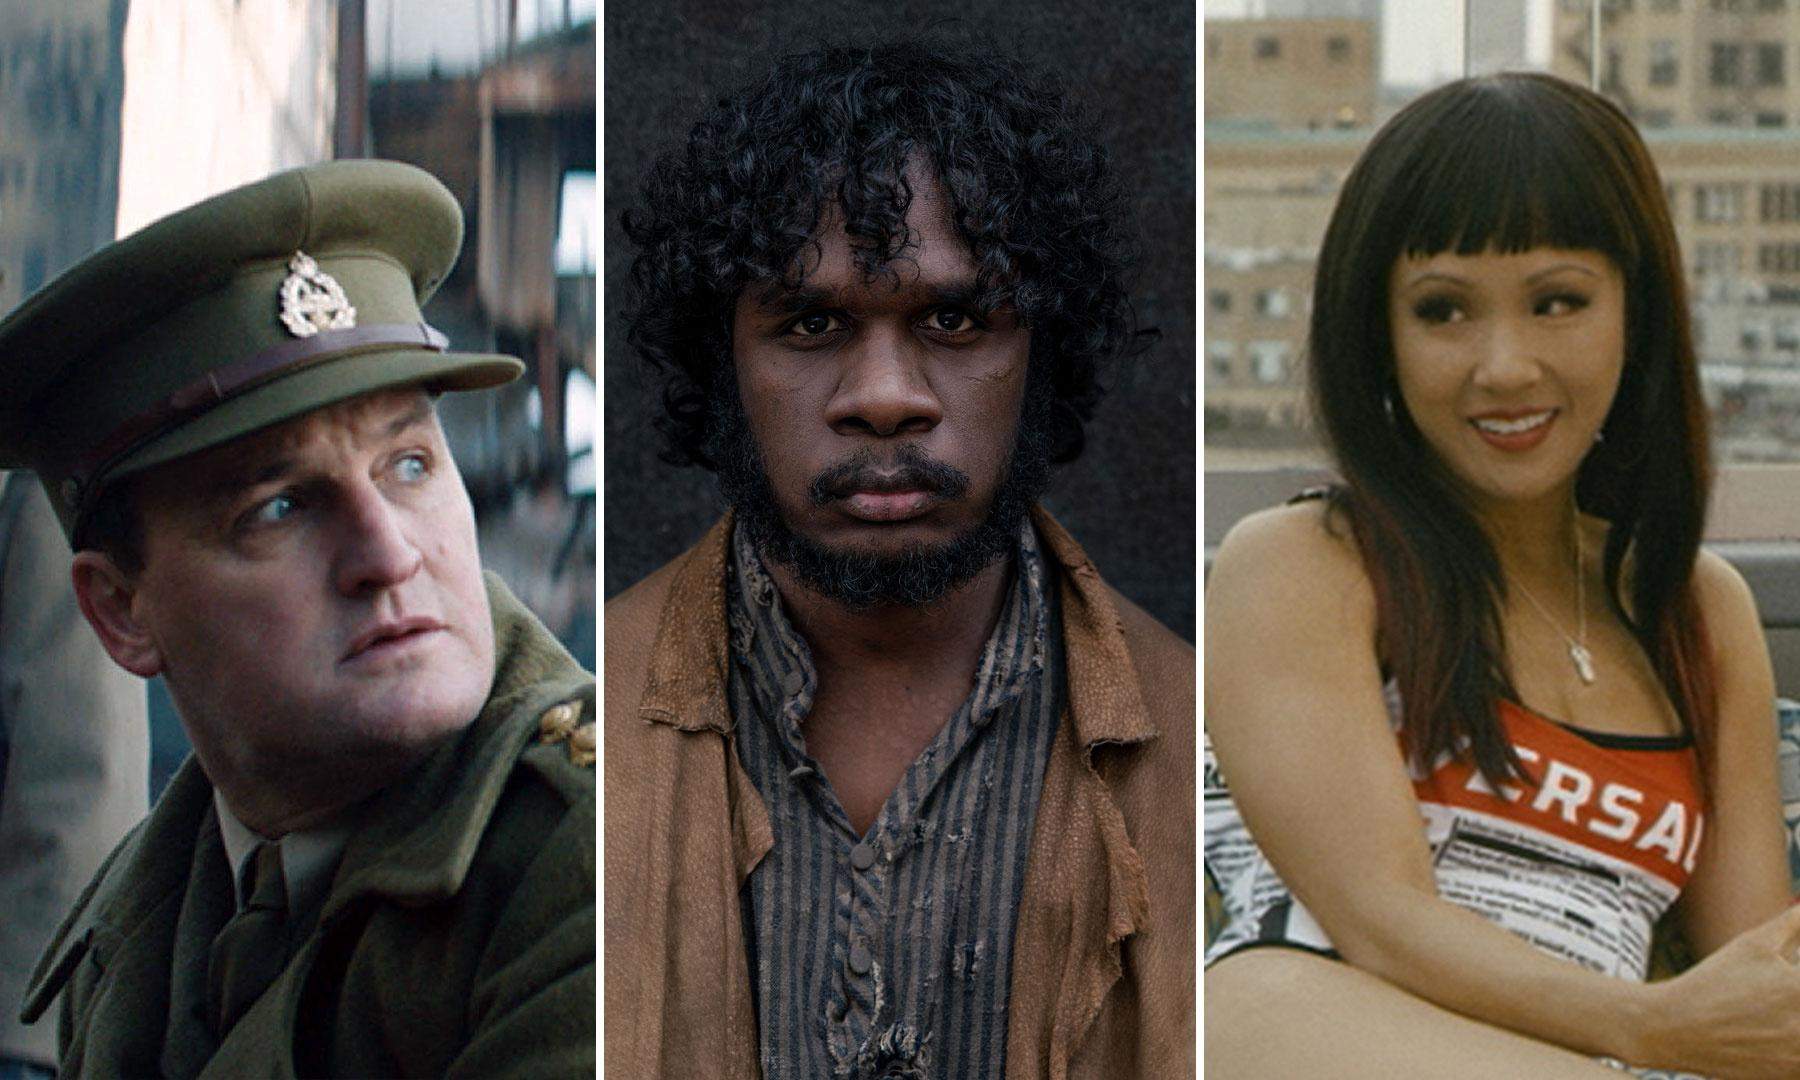 For your consideration: this season's most overlooked film performances